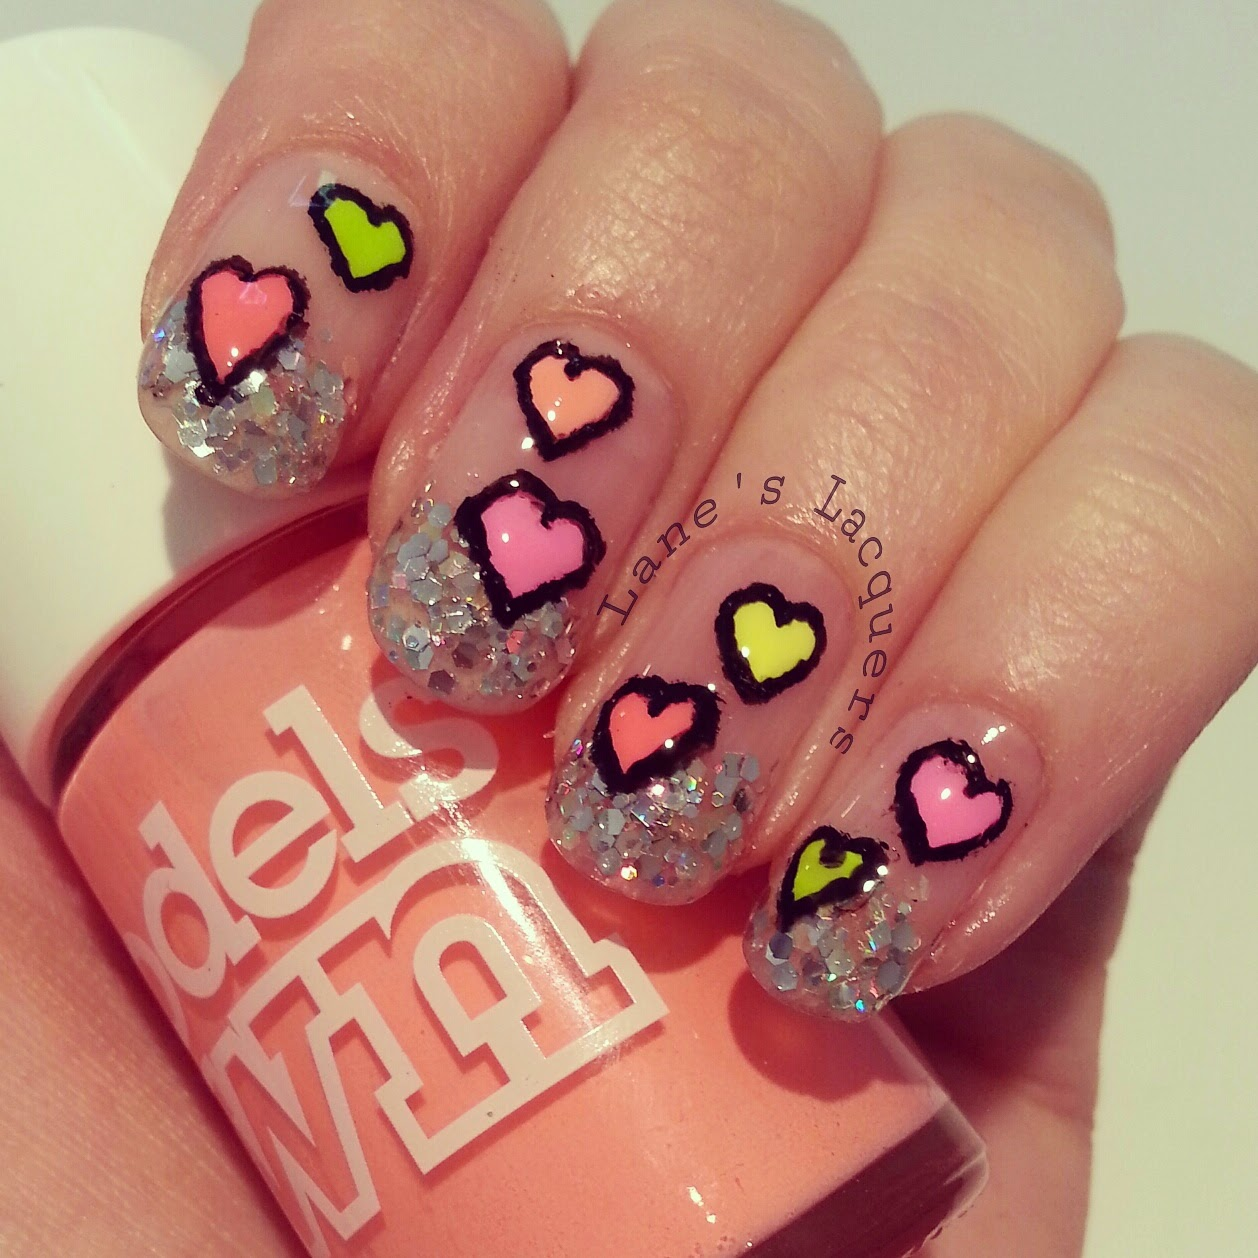 glitter-tips-neon-love-hearts-negative-space-nail-art (2)